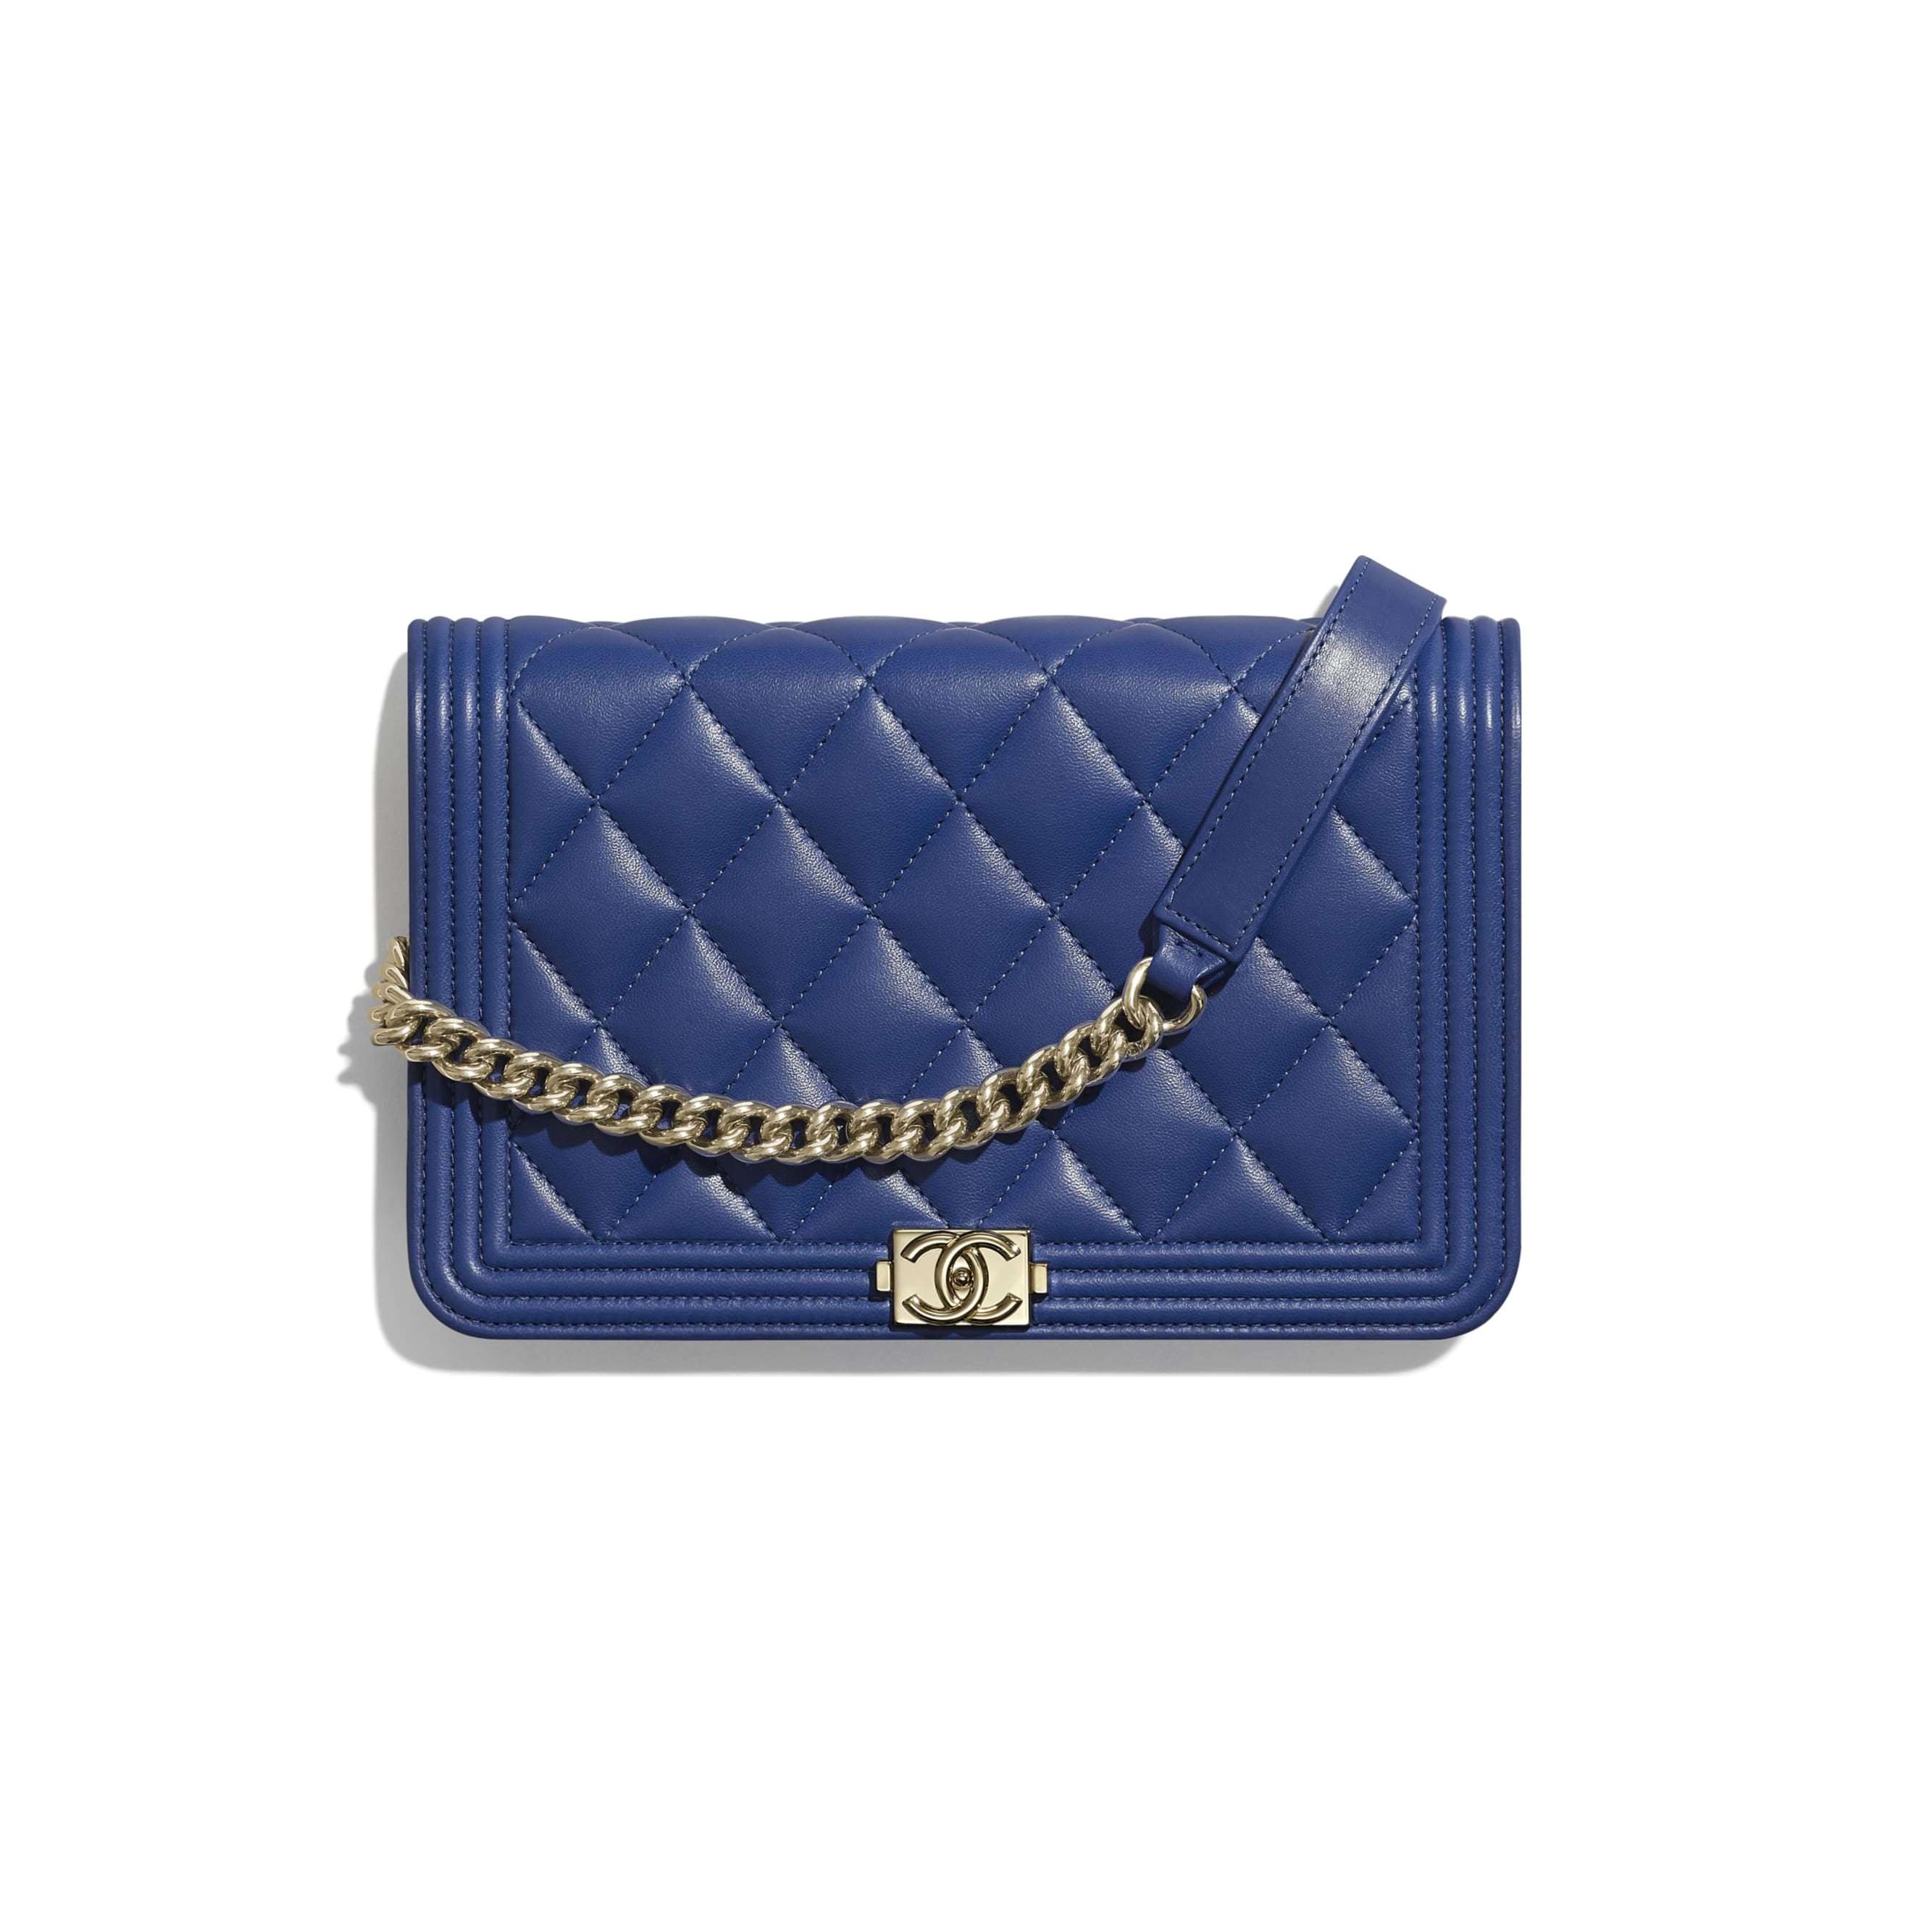 BOY CHANEL Wallet on Chain - Dark Blue - Lambskin & Gold-Tone Metal - CHANEL - Default view - see standard sized version